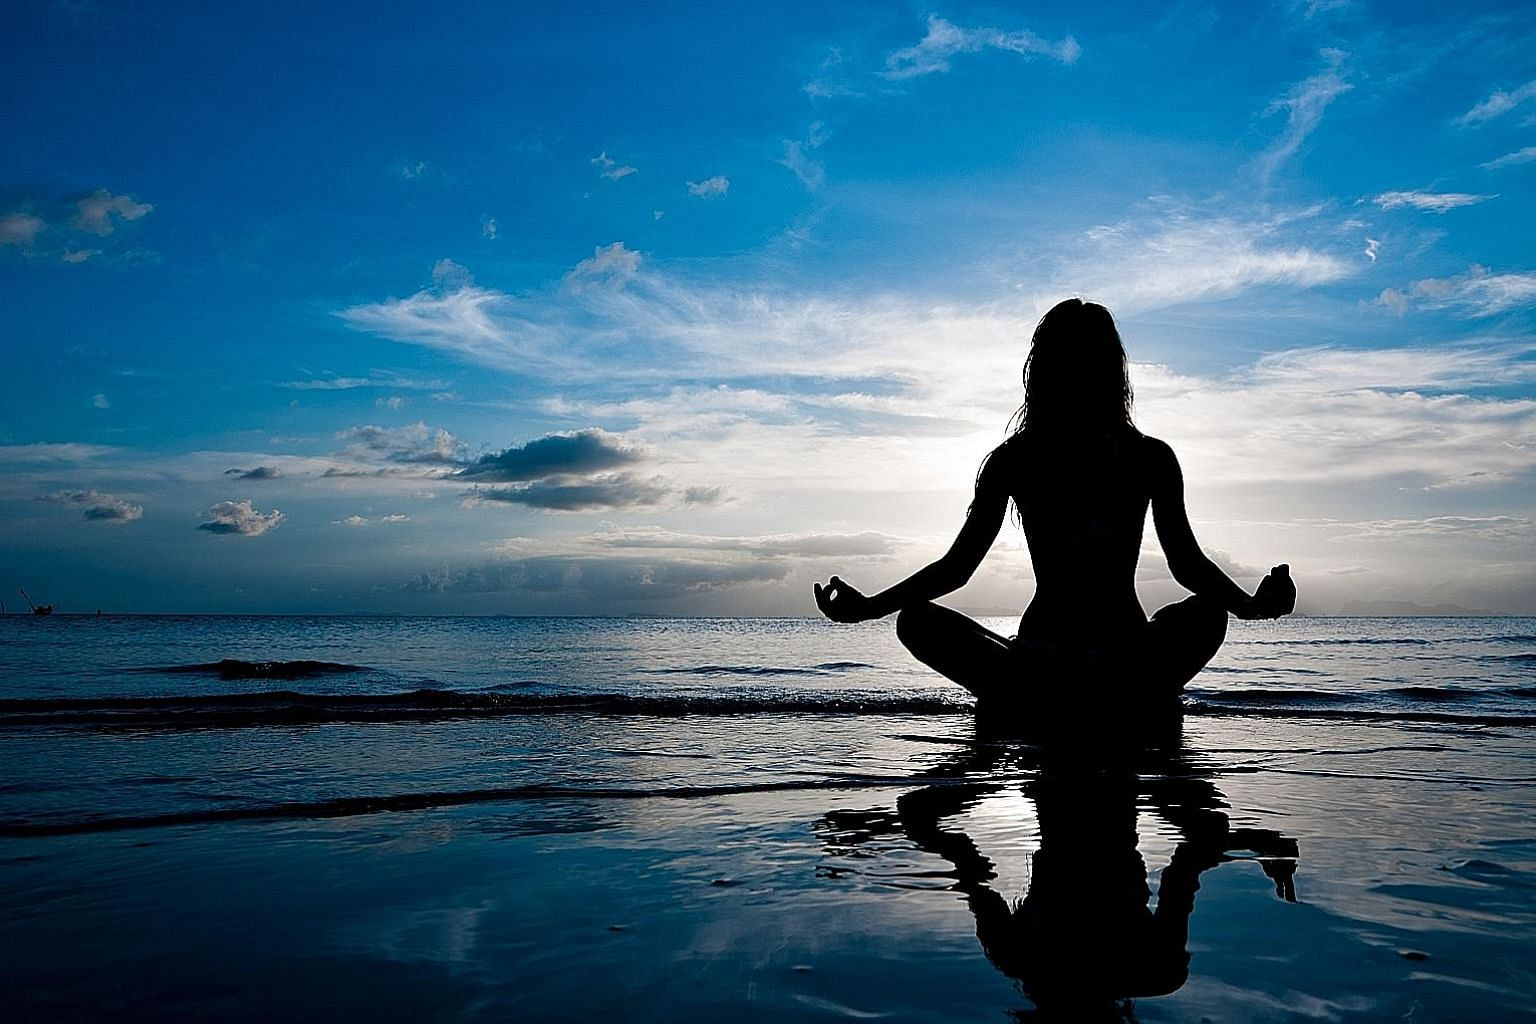 To achieve mental, spiritual and emotional wellness, millennials take up activities such as meditating.